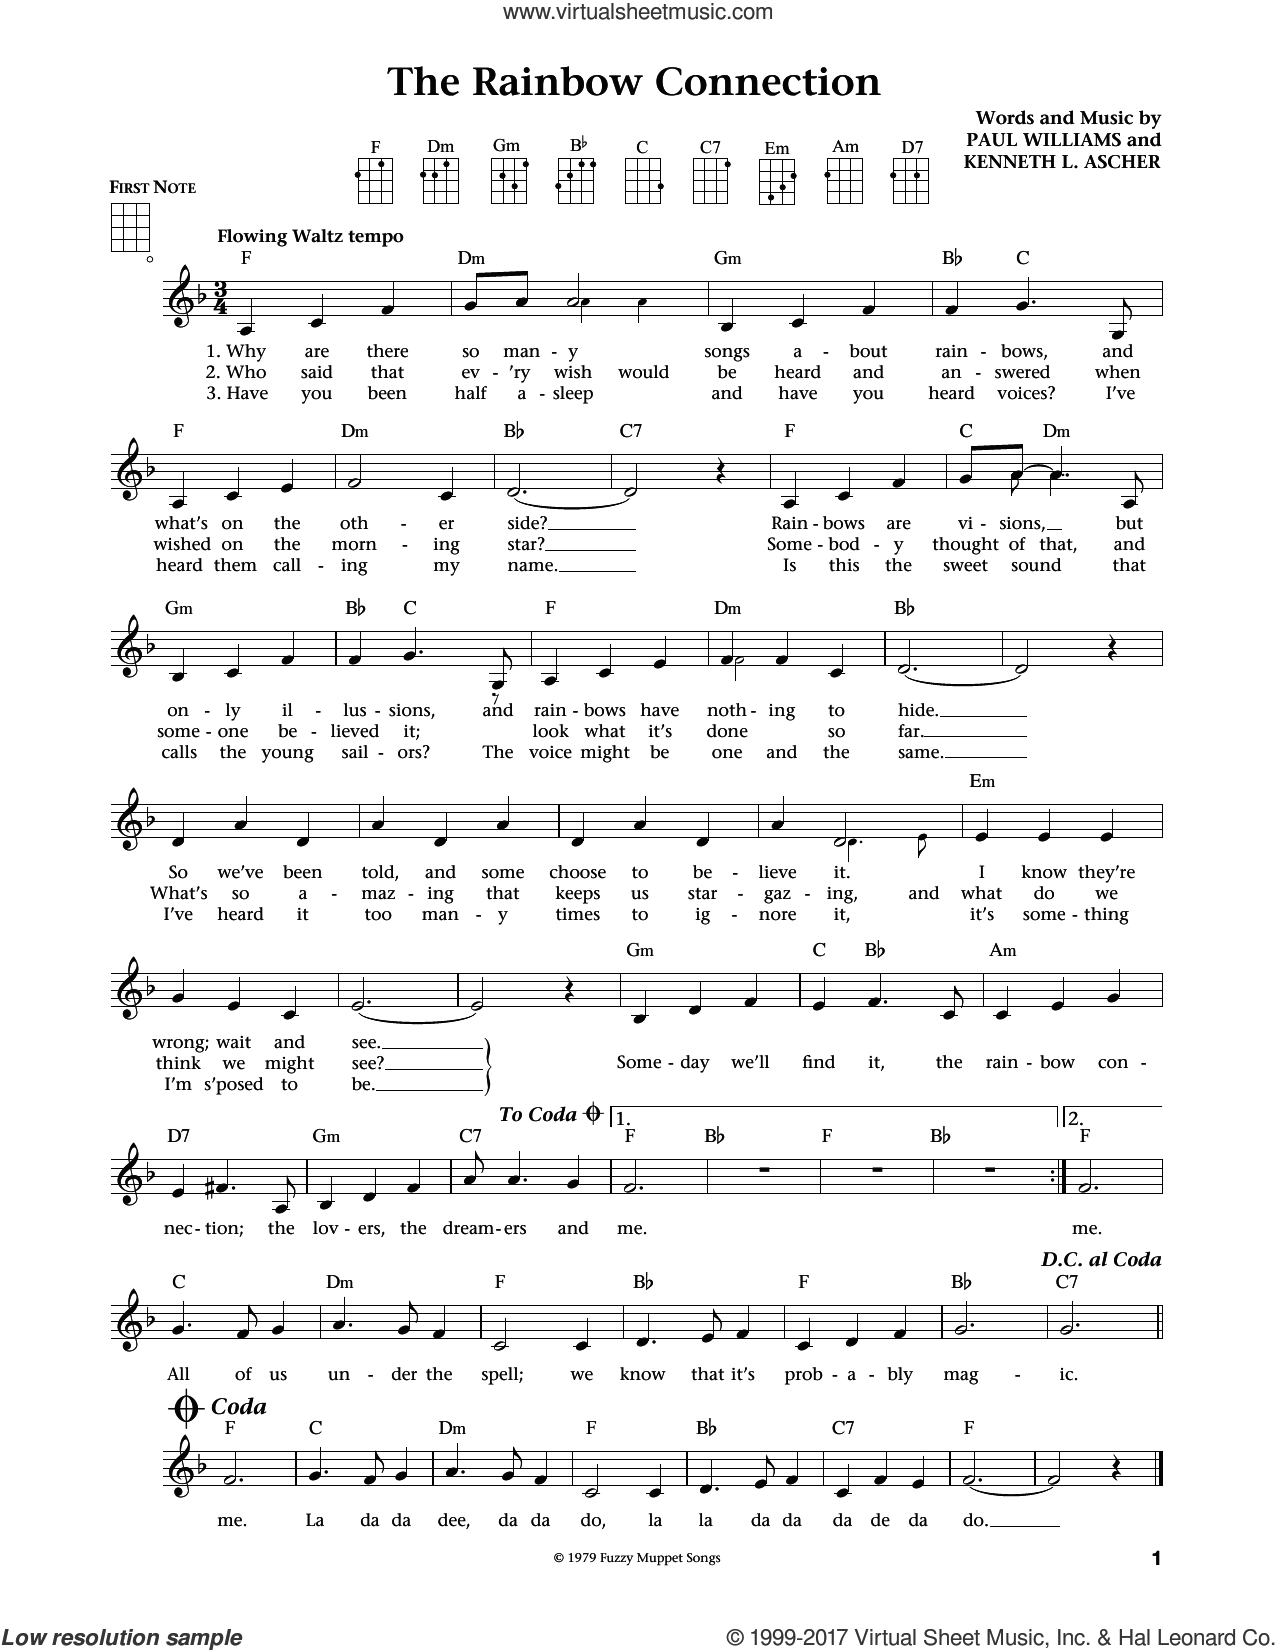 The Rainbow Connection (from The Daily Ukulele) (arr. Liz and Jim Beloff) sheet music for ukulele by Paul Williams, Jim Beloff, Liz Beloff and Kenneth L. Ascher, intermediate skill level